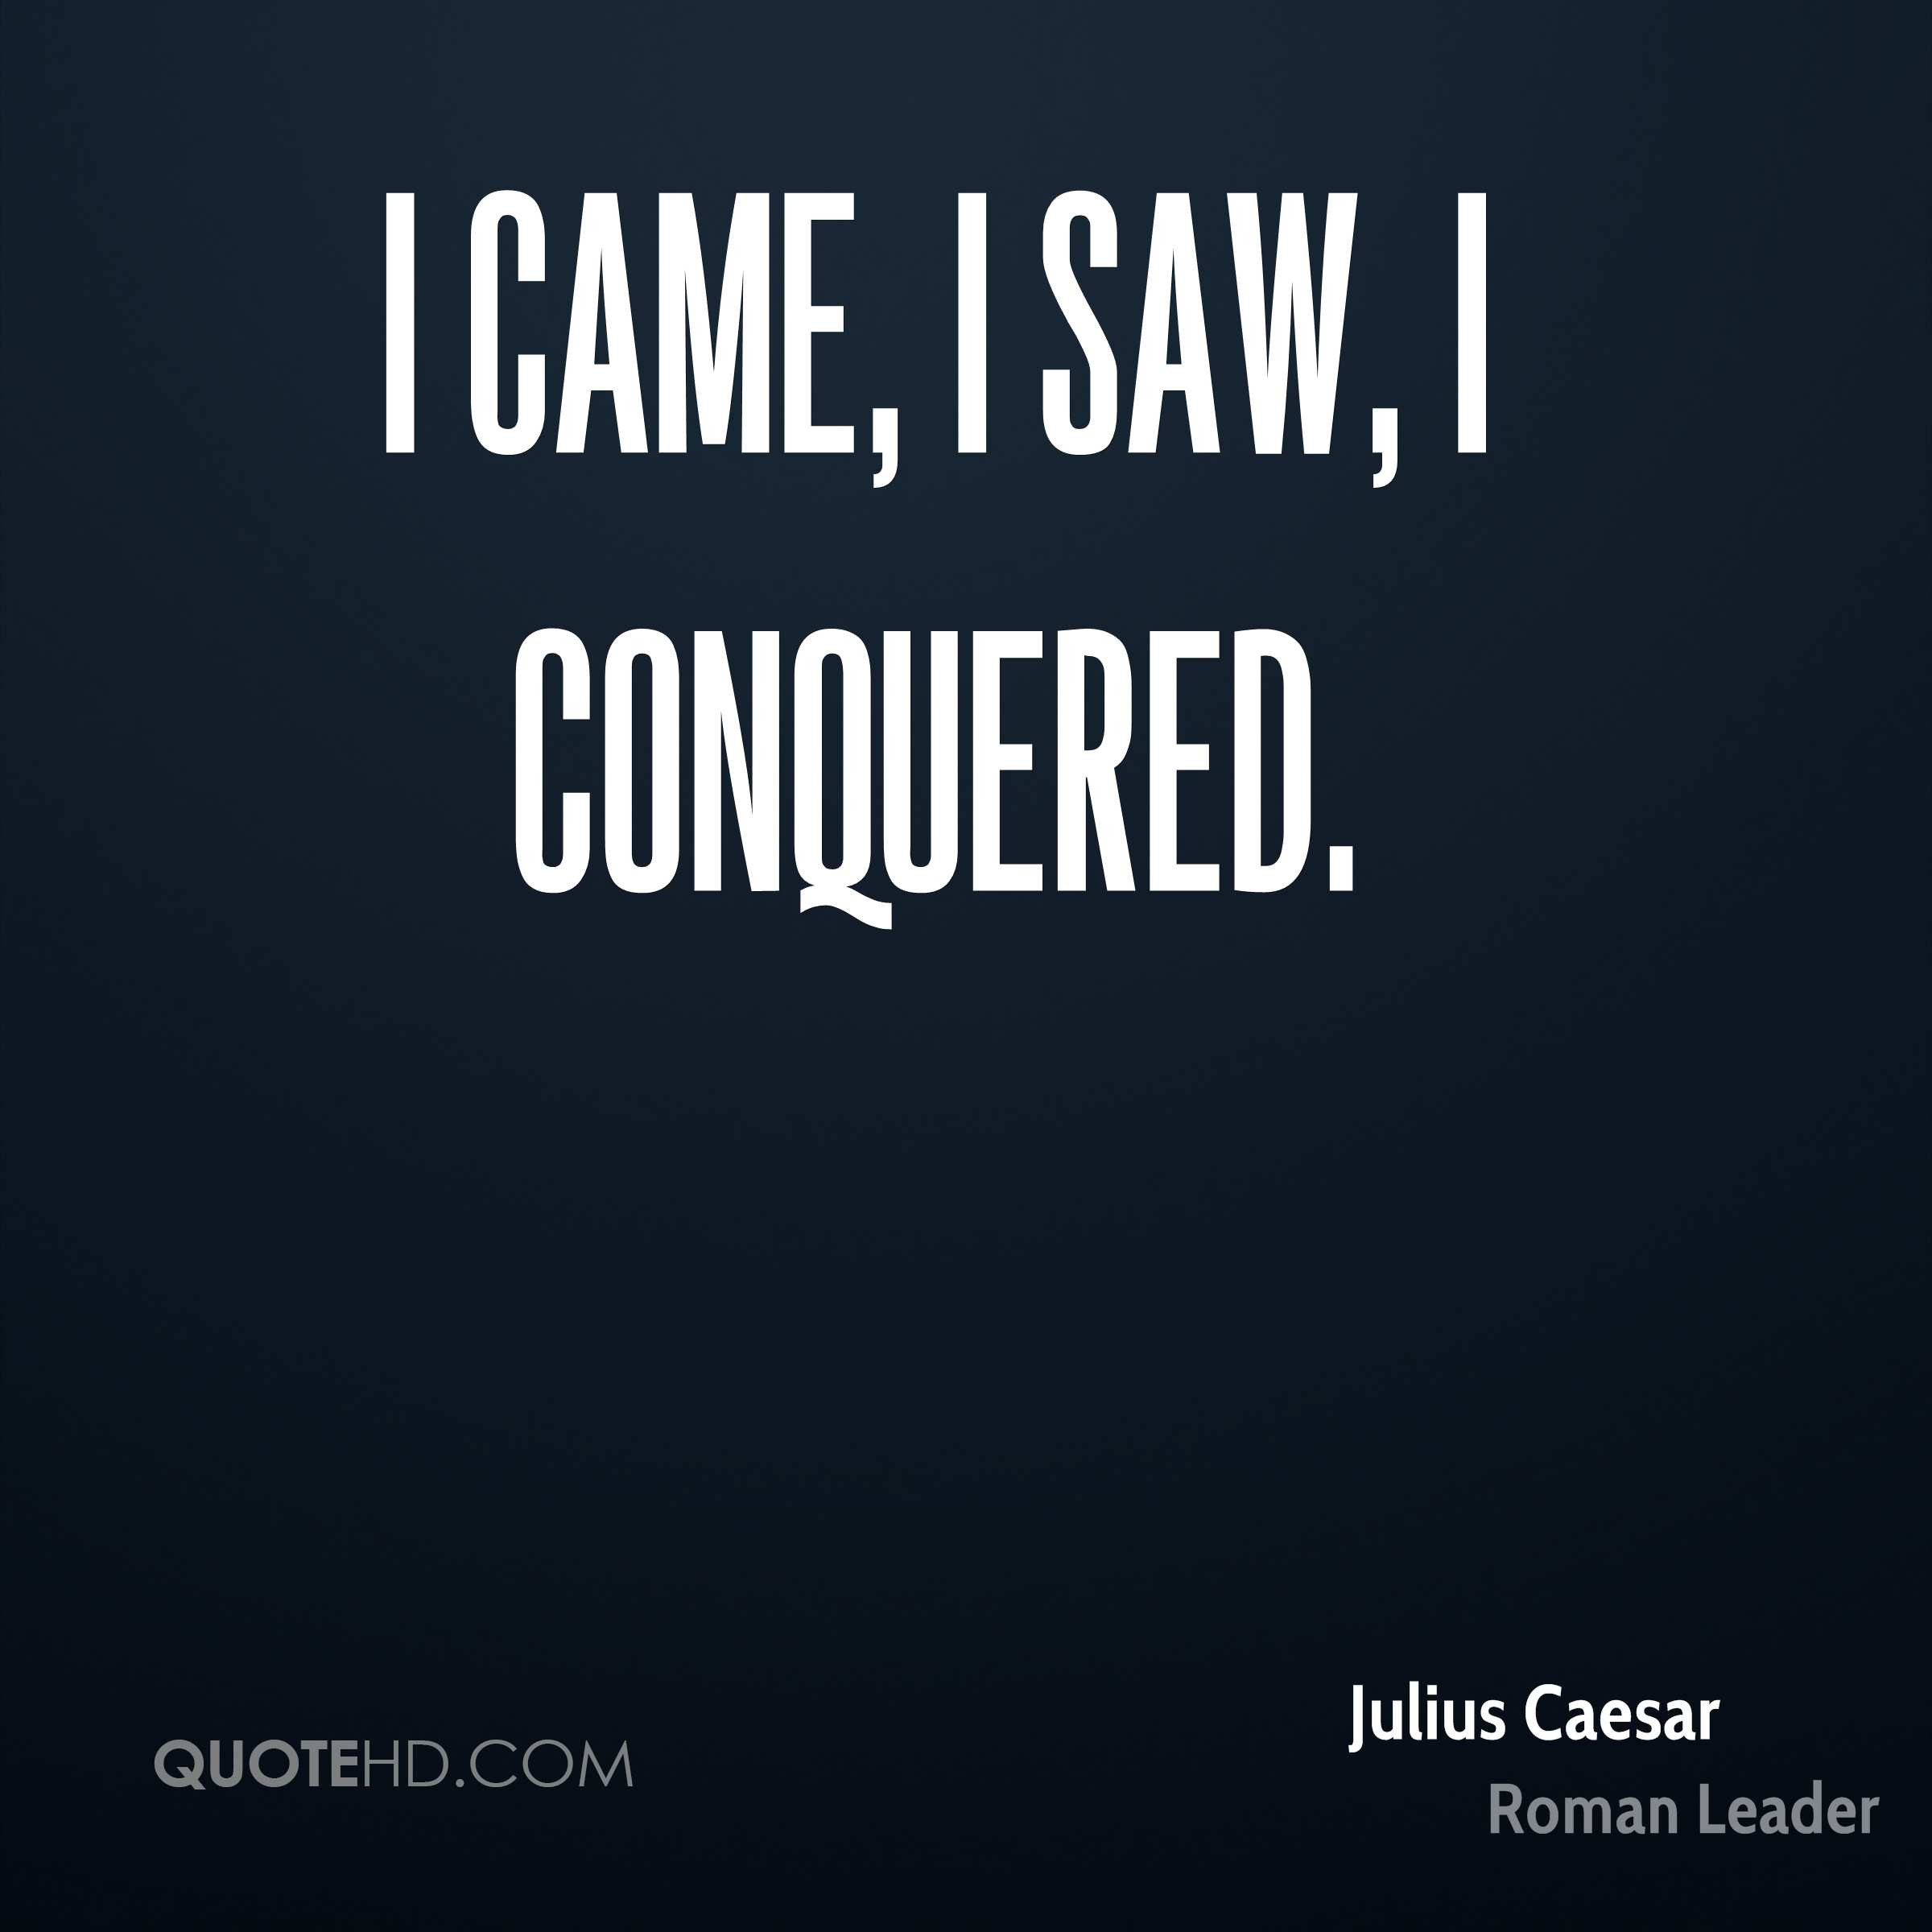 Julius Caesar Leadership Quotes  Julius Caesar History Quotes